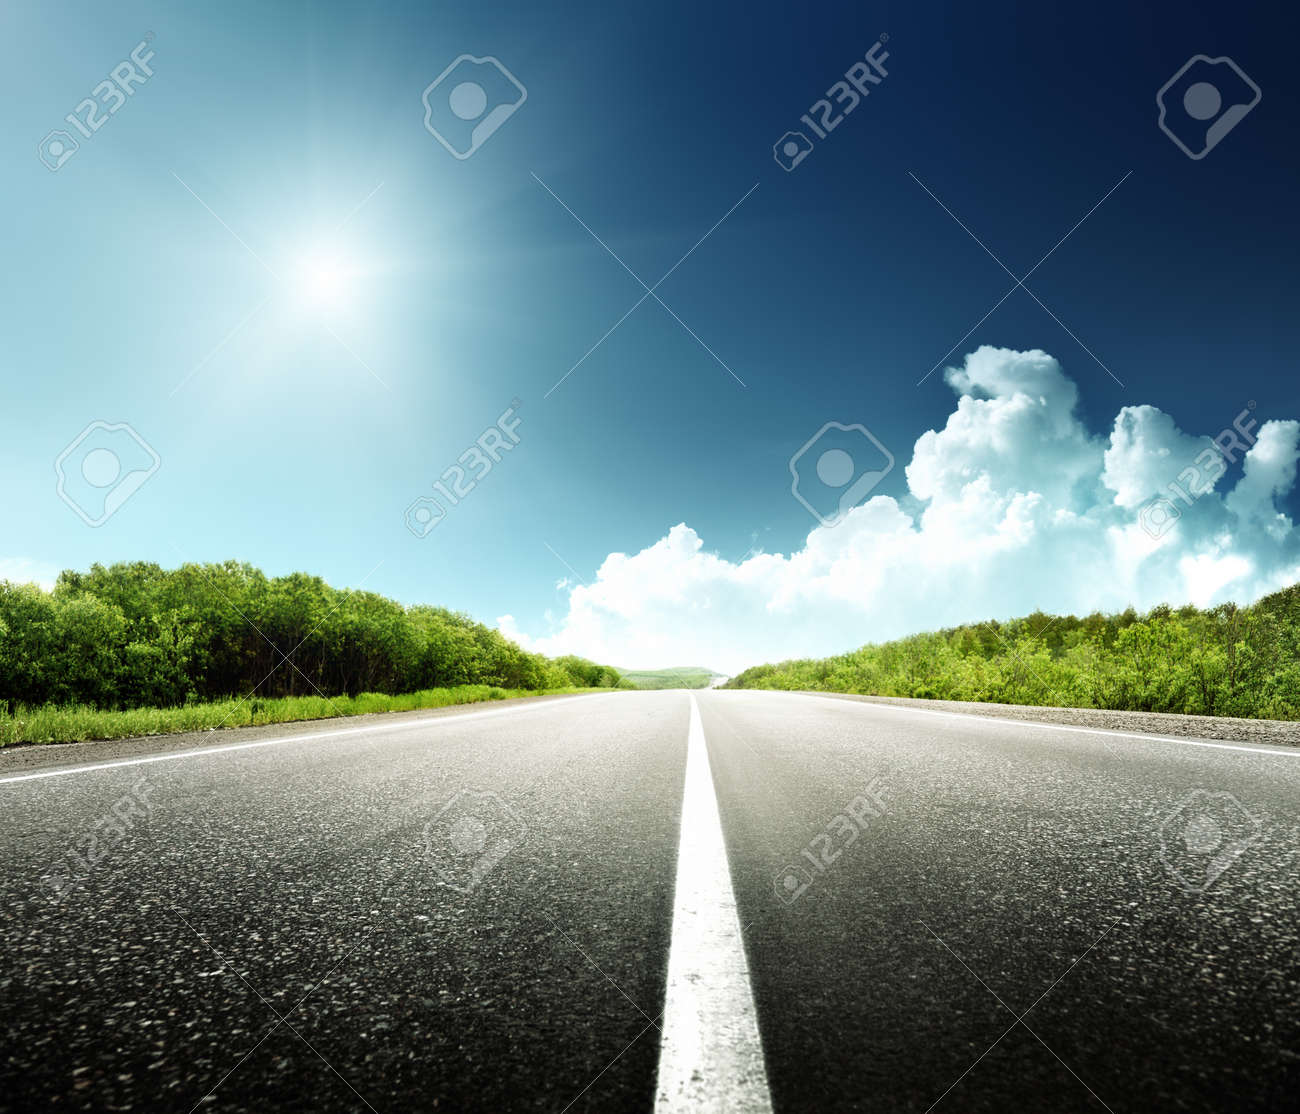 road in forest - 13546463